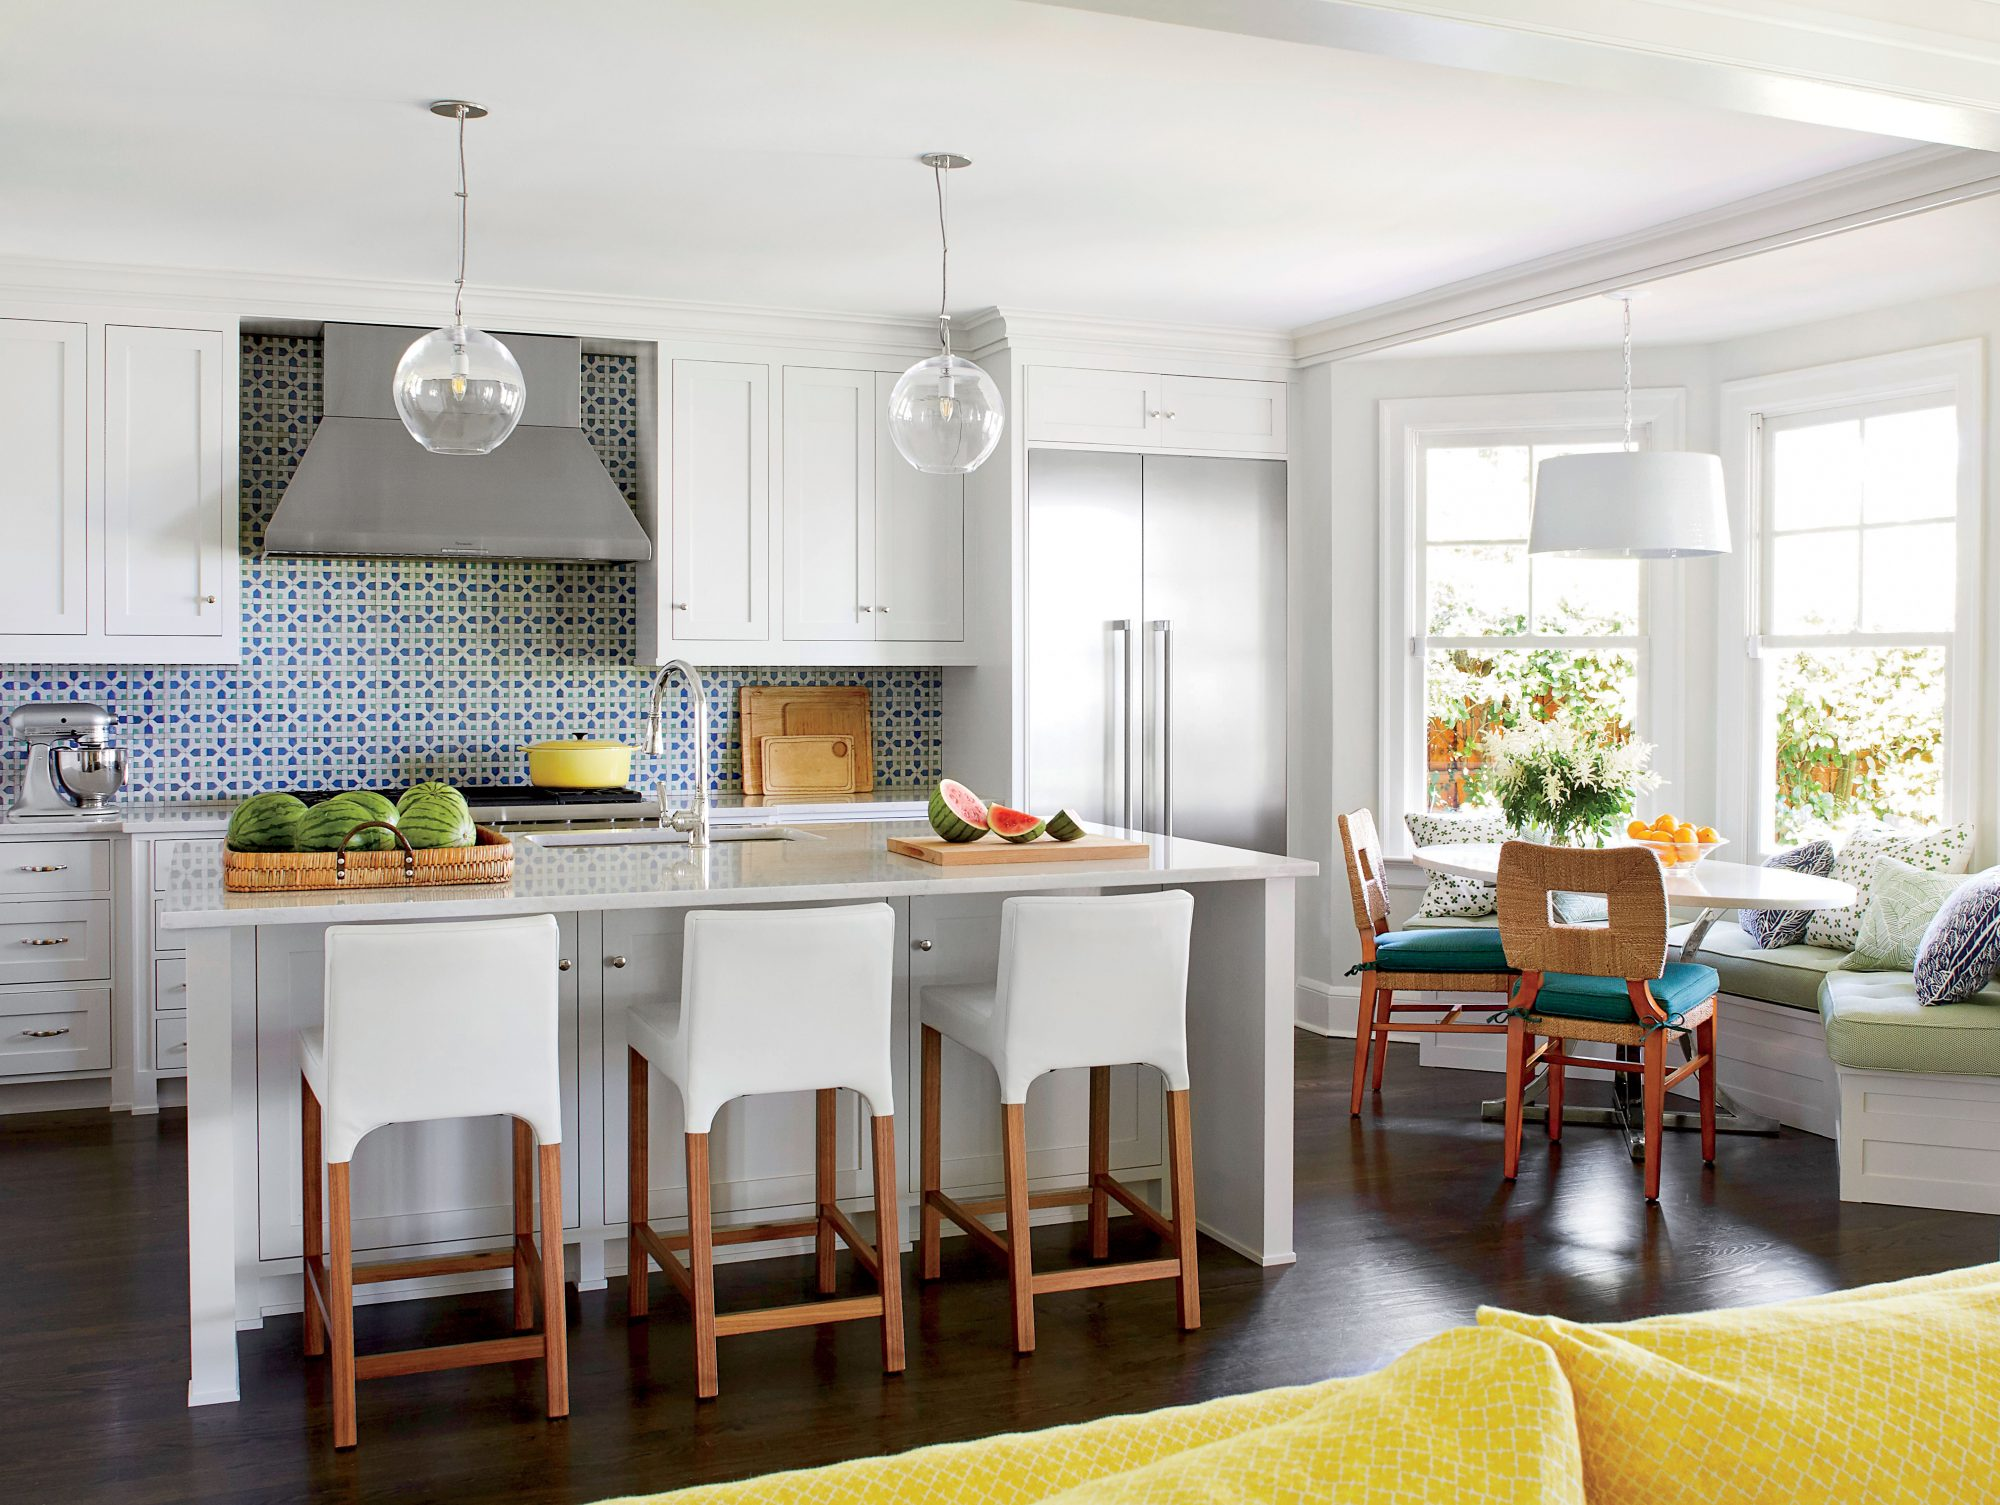 Andrew Howard Colorful Home with Green, Blue, and White Kitchen